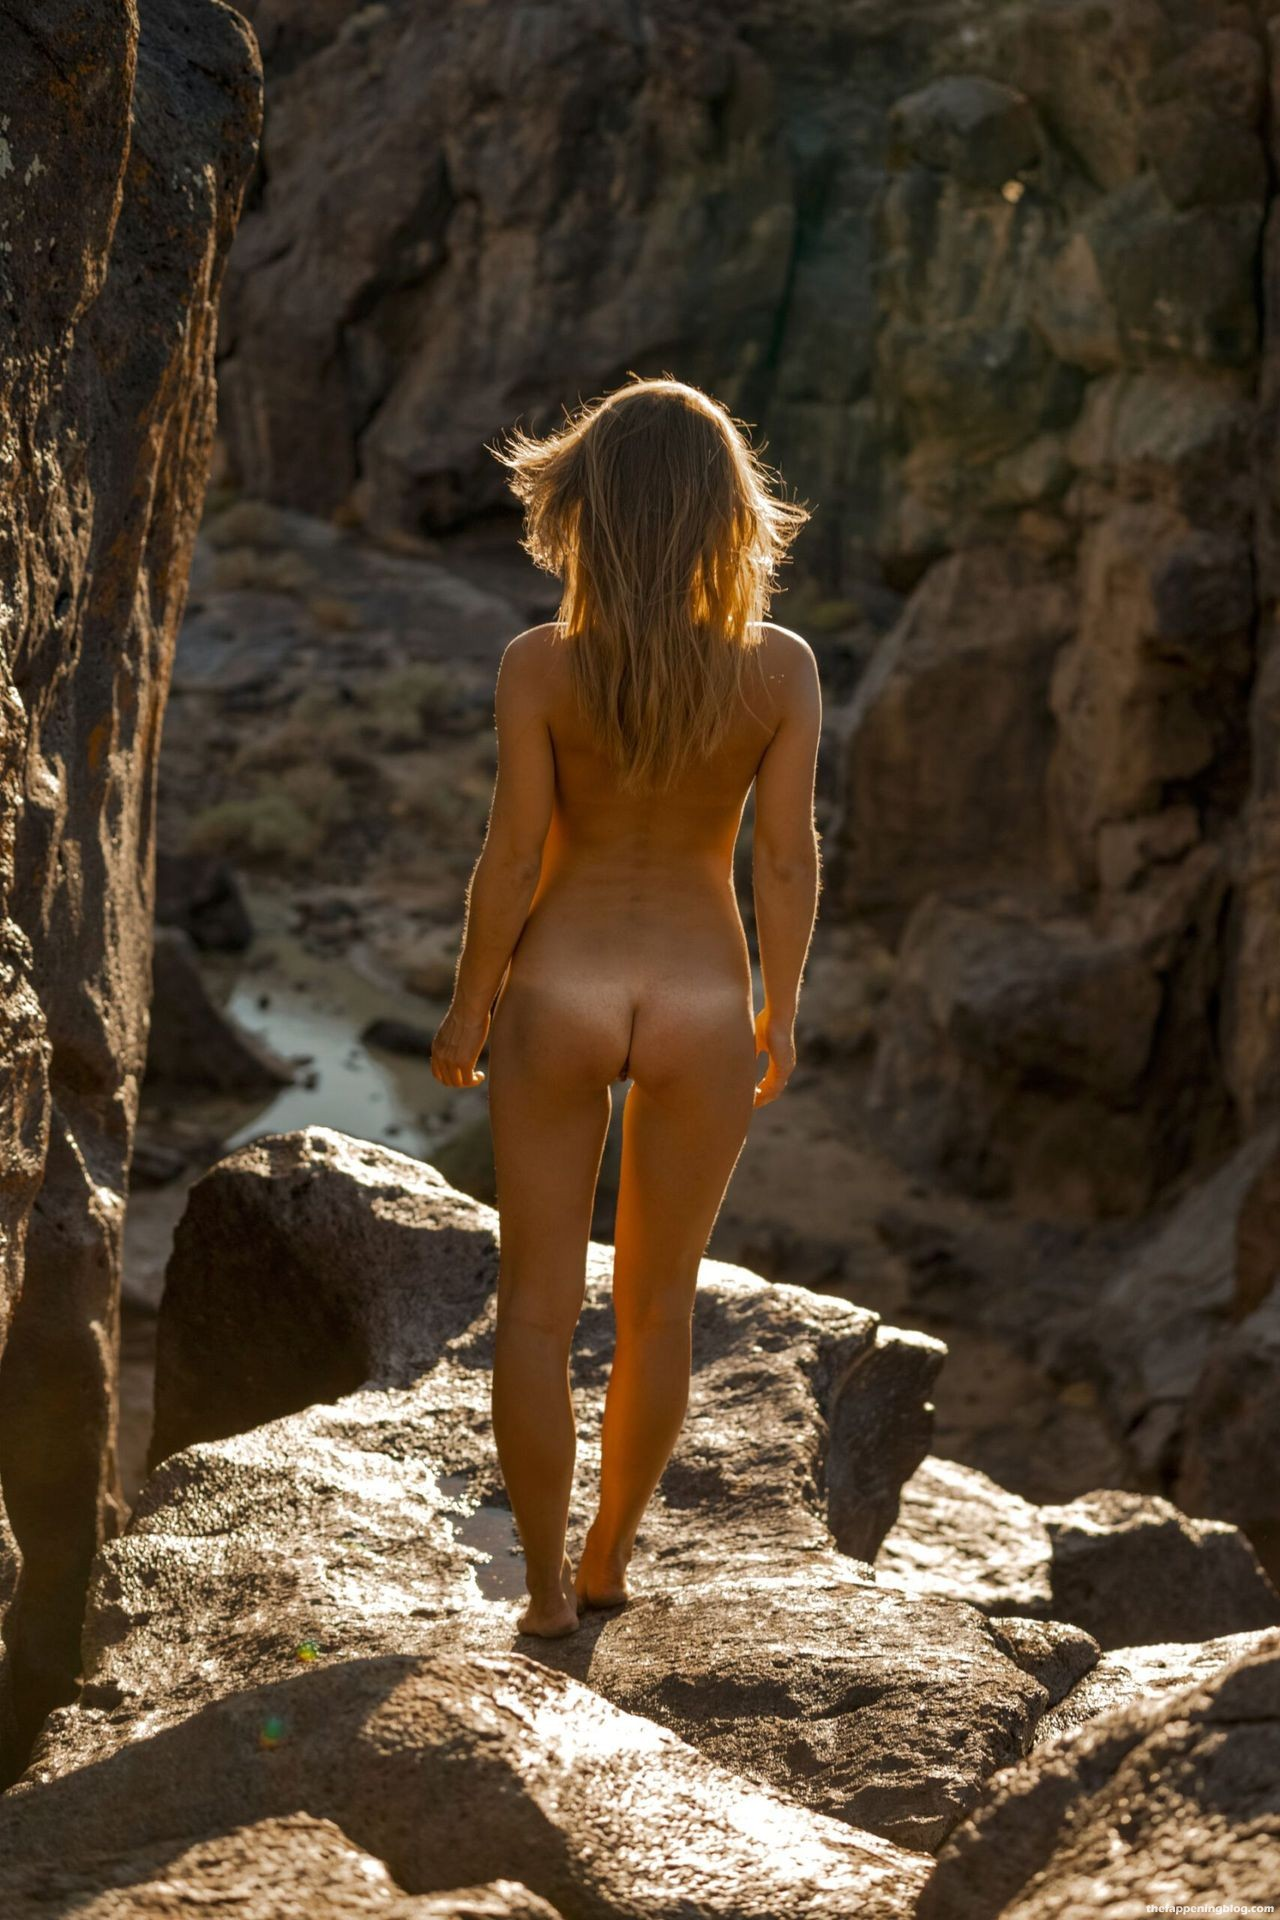 Marisa-Papen-Stunning-Naked-Body-39-scaled1-thefappeningblog.com_.jpg